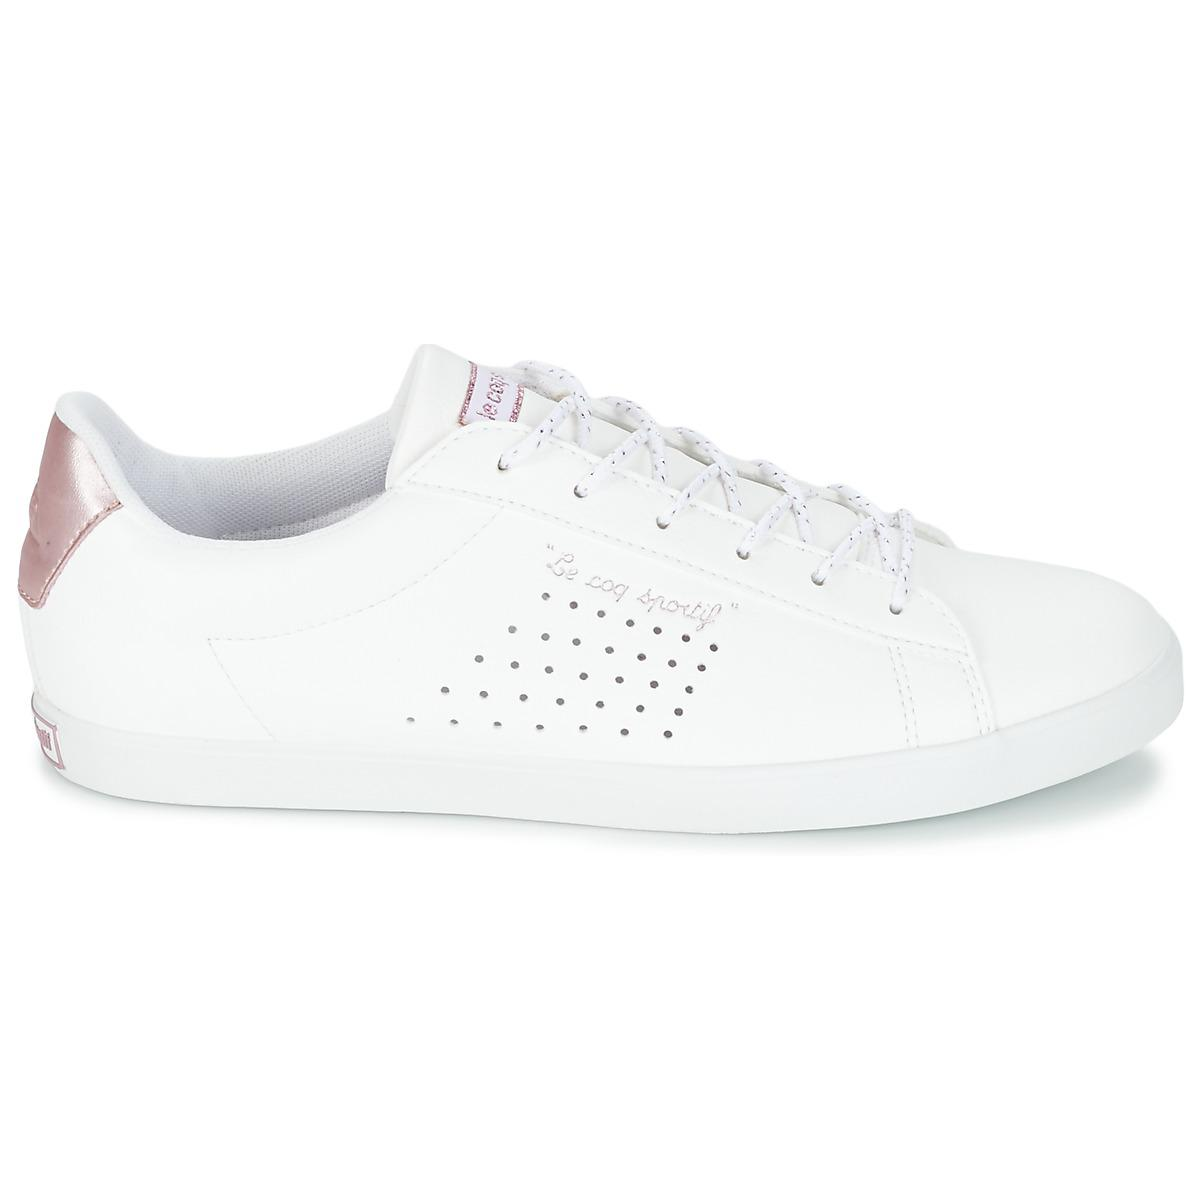 c0ae339433ca Le Coq Sportif Agate Lo S Lea metallic Shoes (trainers) in White - Lyst